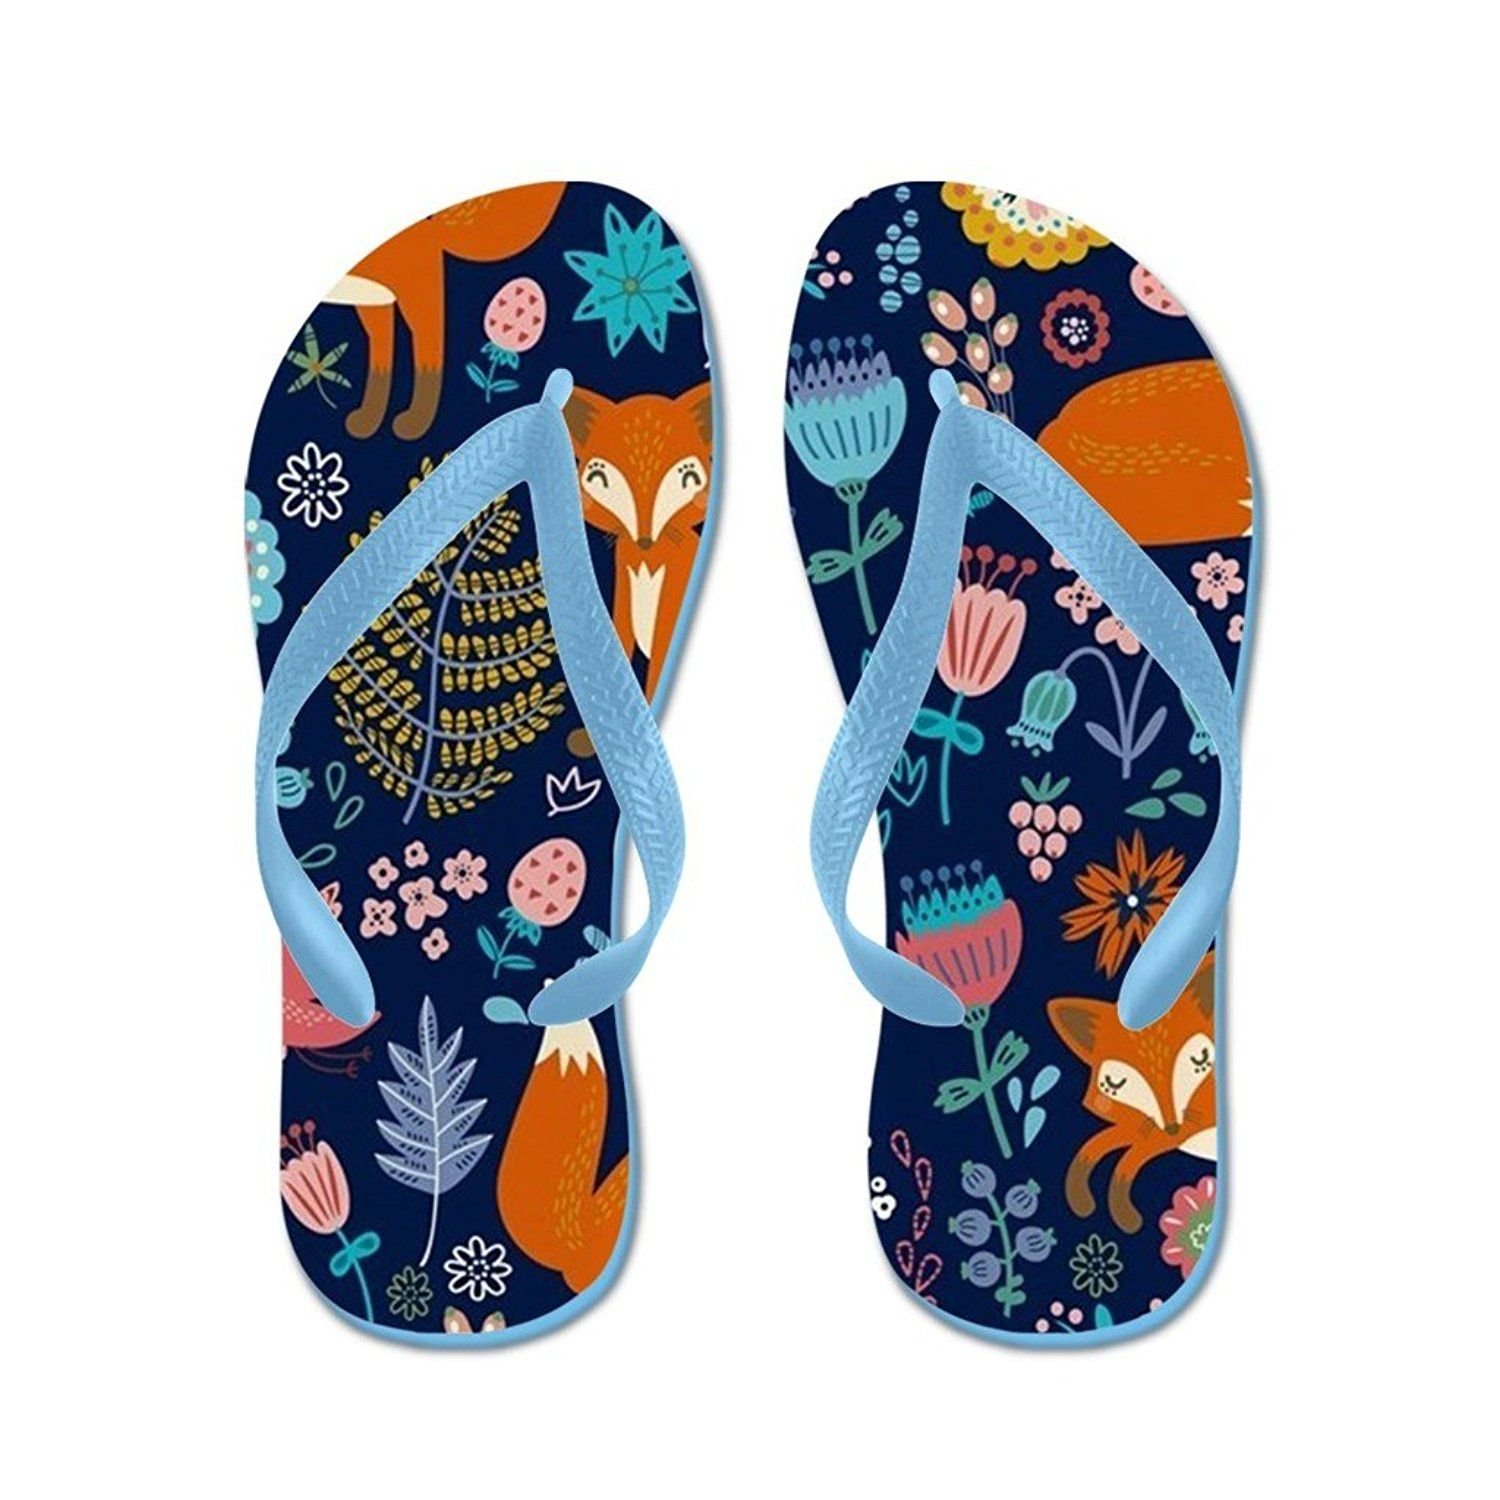 Lplpol Floral Cute Fox Pattern Flip Flops for Kids and Adult Unisex Beach Sandals Pool Shoes Party Slippers ** Want additional info? Click on the image.